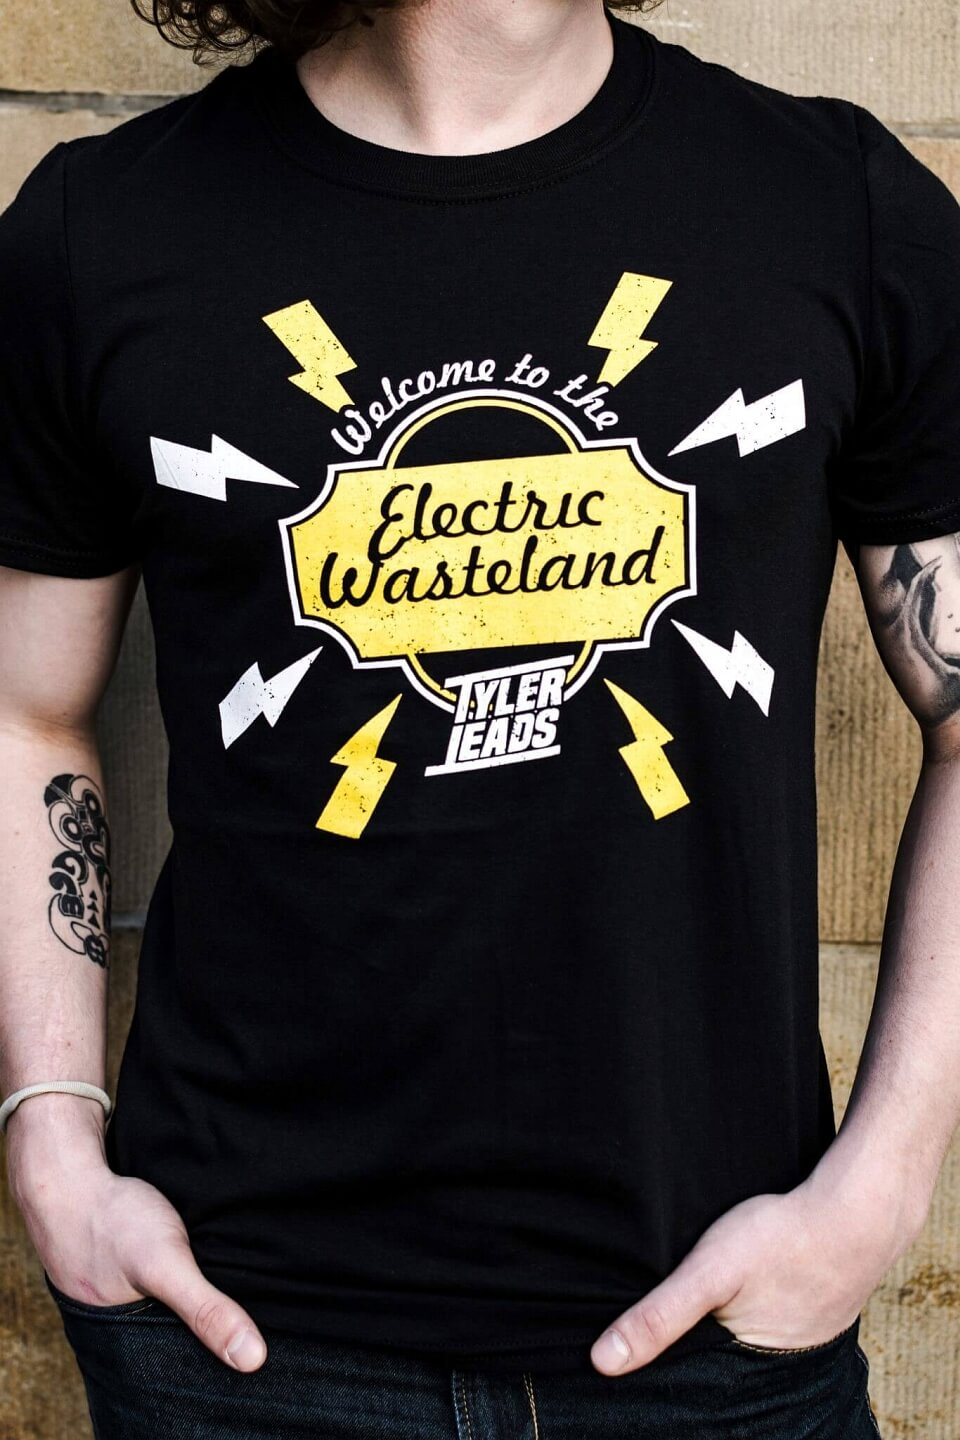 Electric Wasteland T-Shirt